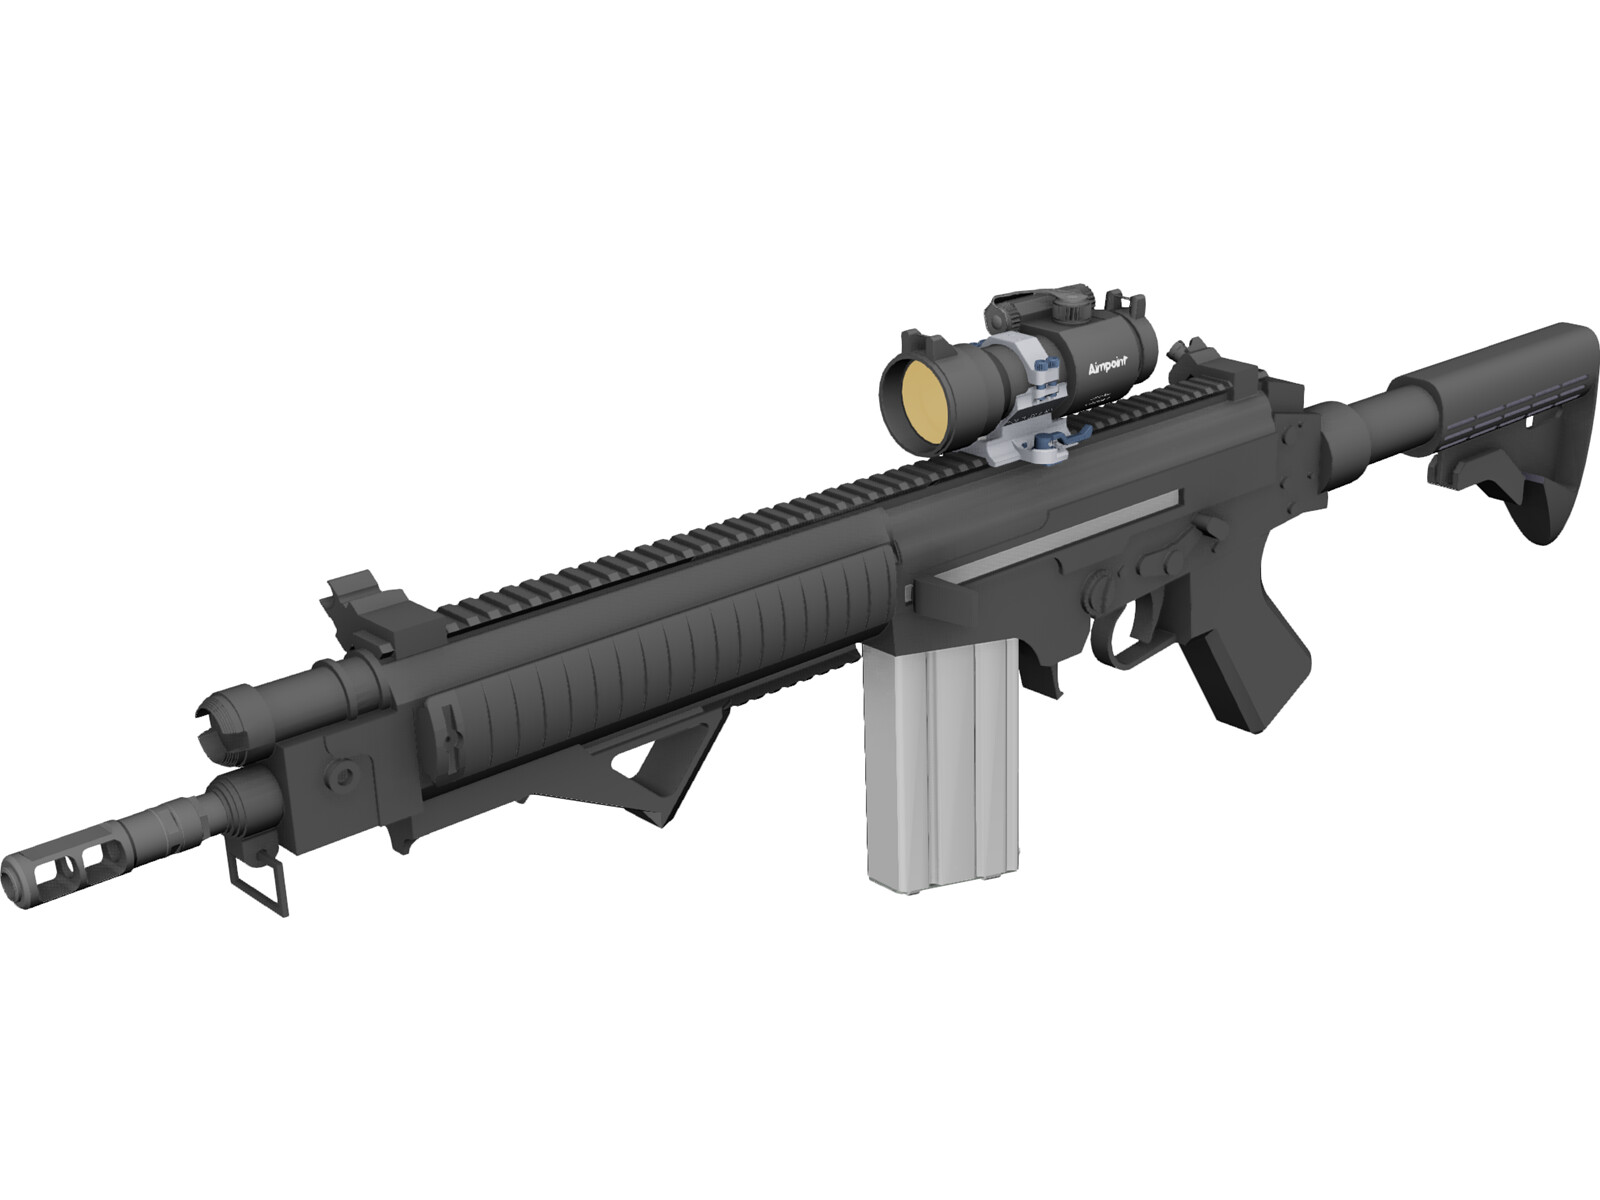 FN FAL Custom Rifle with Aimpoint Scope